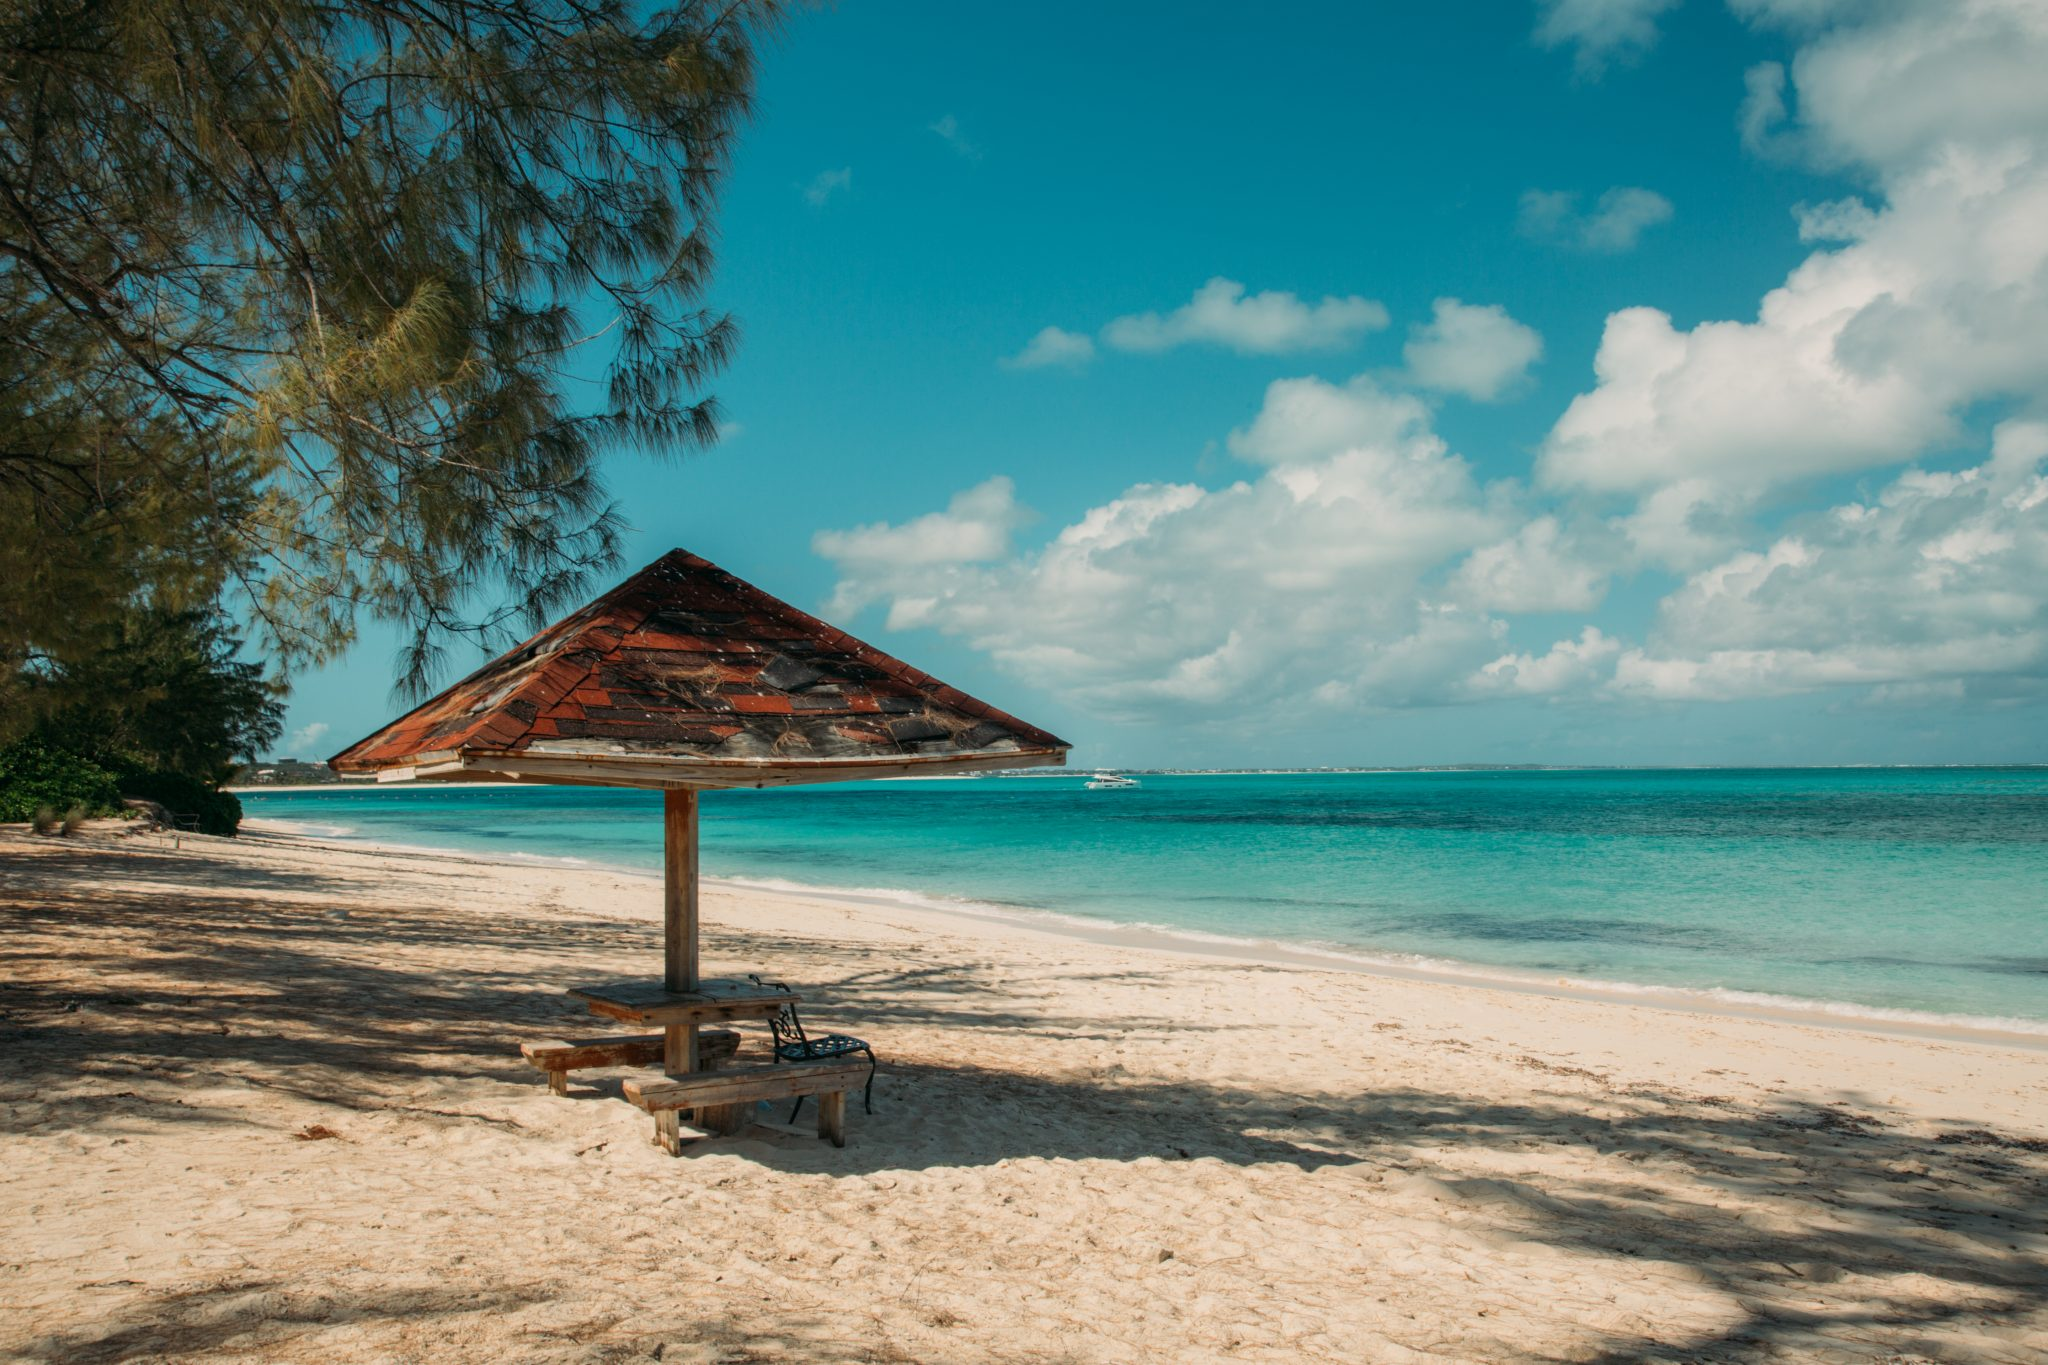 Traveling to Turks and Caicos During COVID-19 – What to Know Before You Go